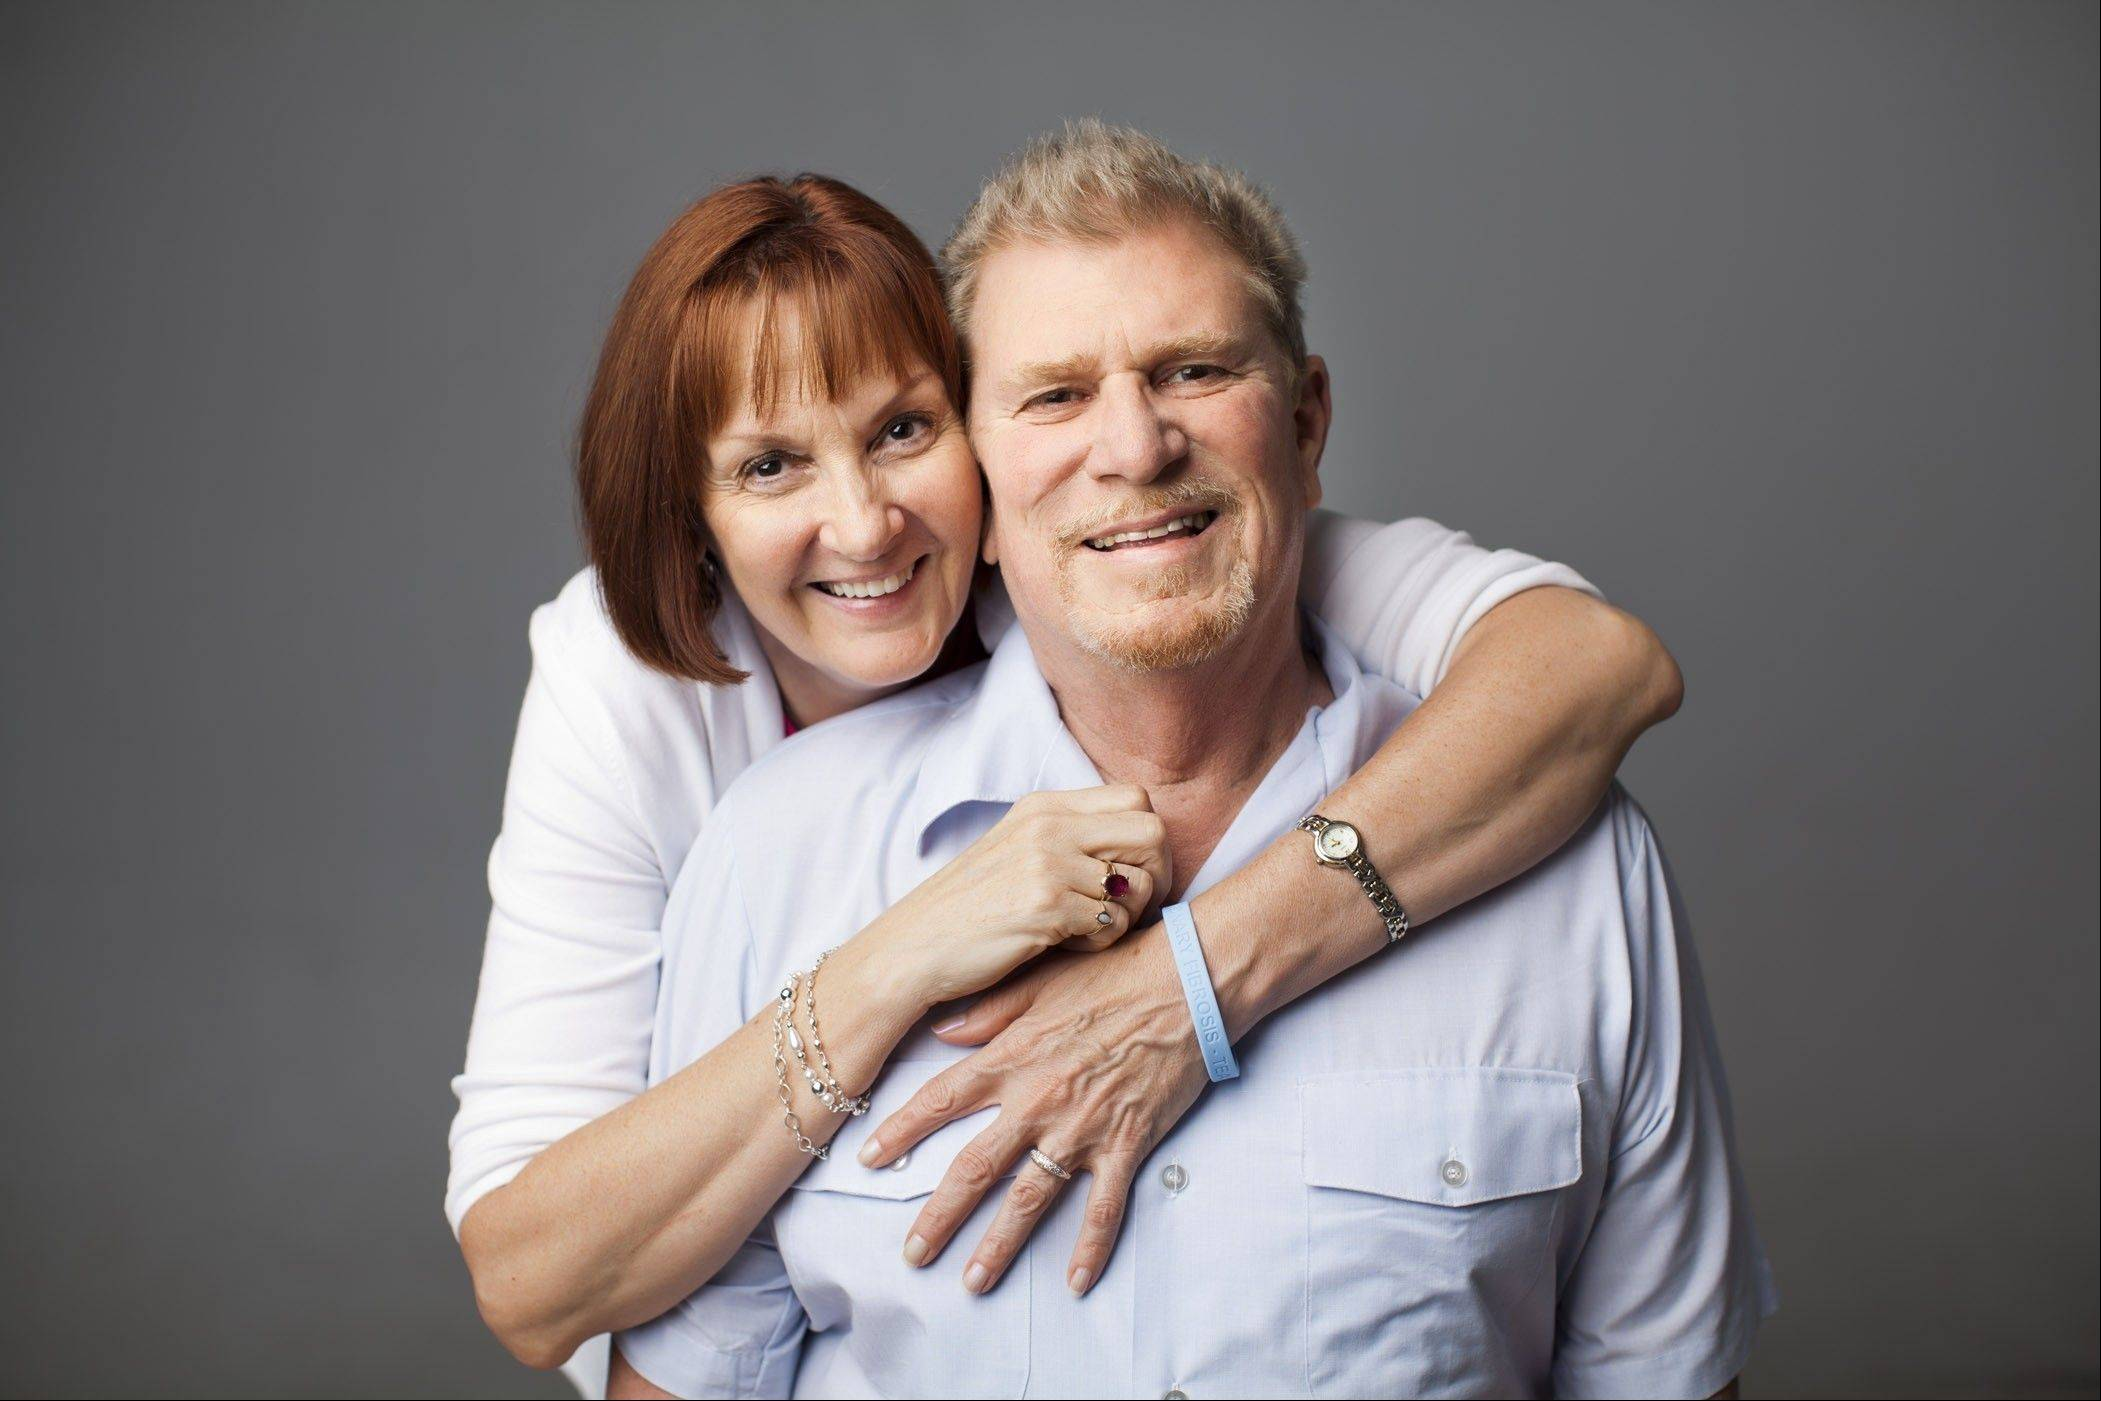 Streamwood's Jeffery Peters and his wife, Michele, had never heard of pulmonary fibrosis until he was diagnosed with the incurable lung disease that kills 40,000 Americans each year, about the same as breast cancer.